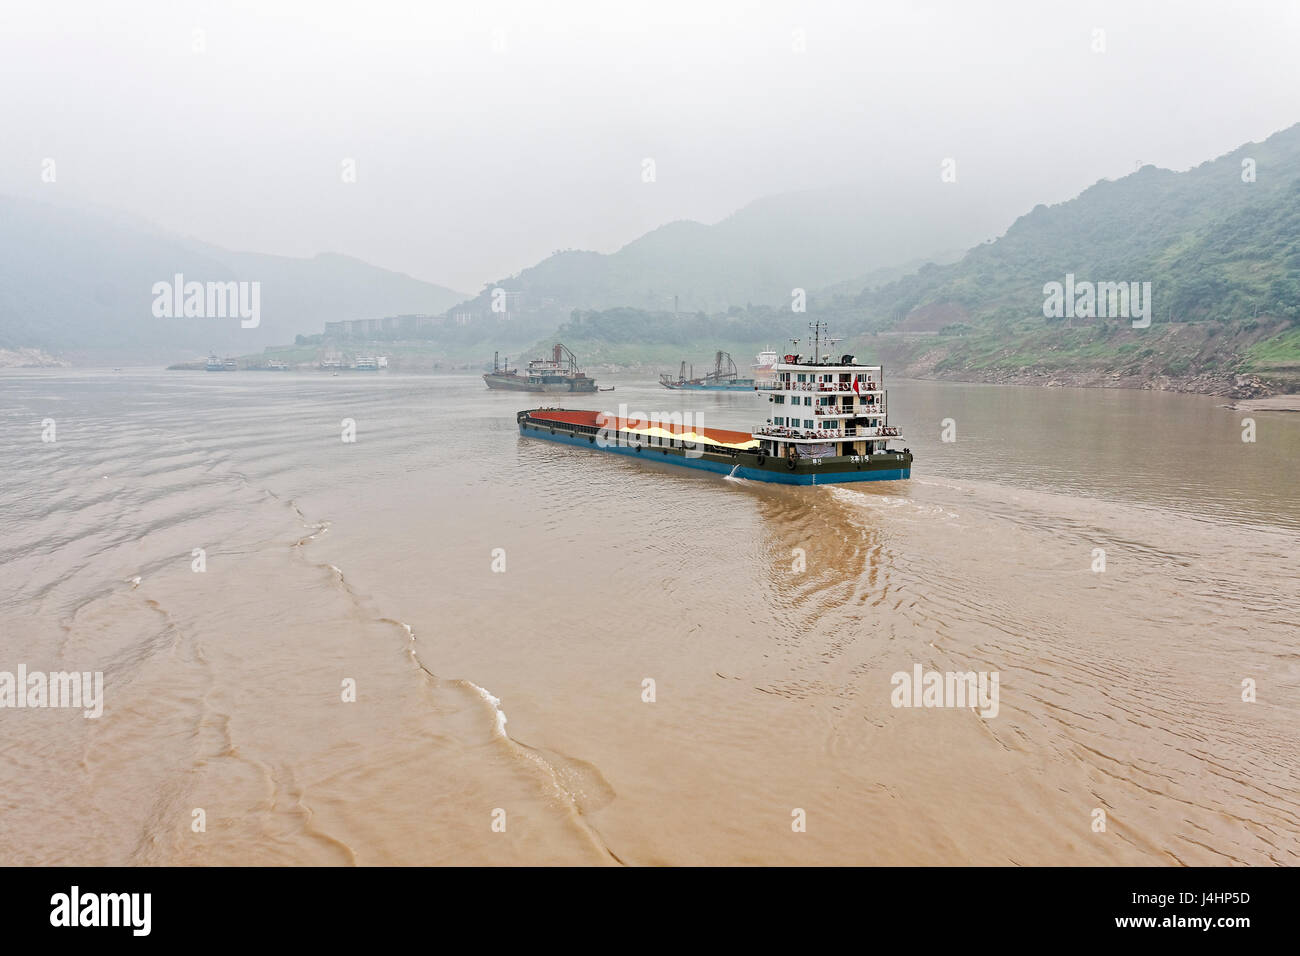 Cargo ships laden with minerals make their way up the Yangtze River between steep wooded hills shrouded in mist - Stock Image